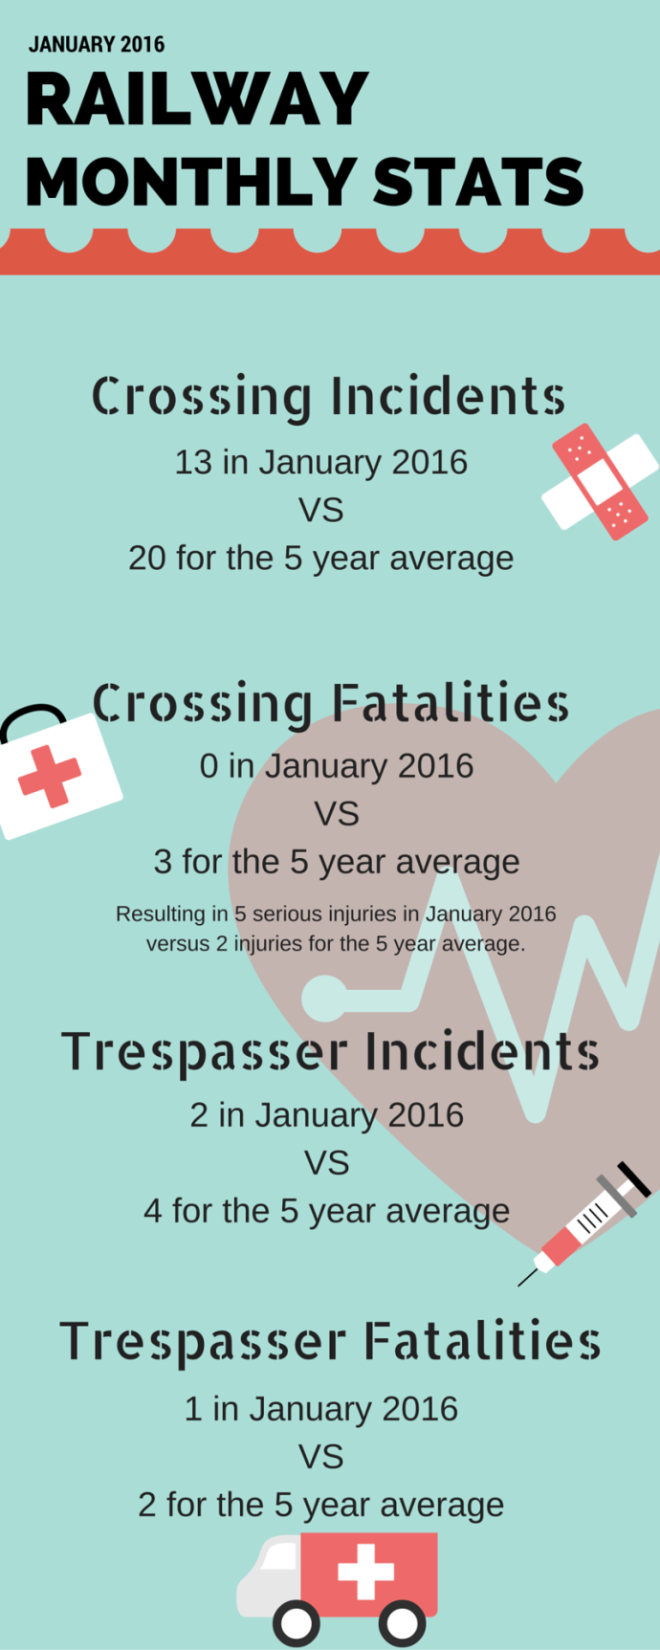 January rail safety monthly stats